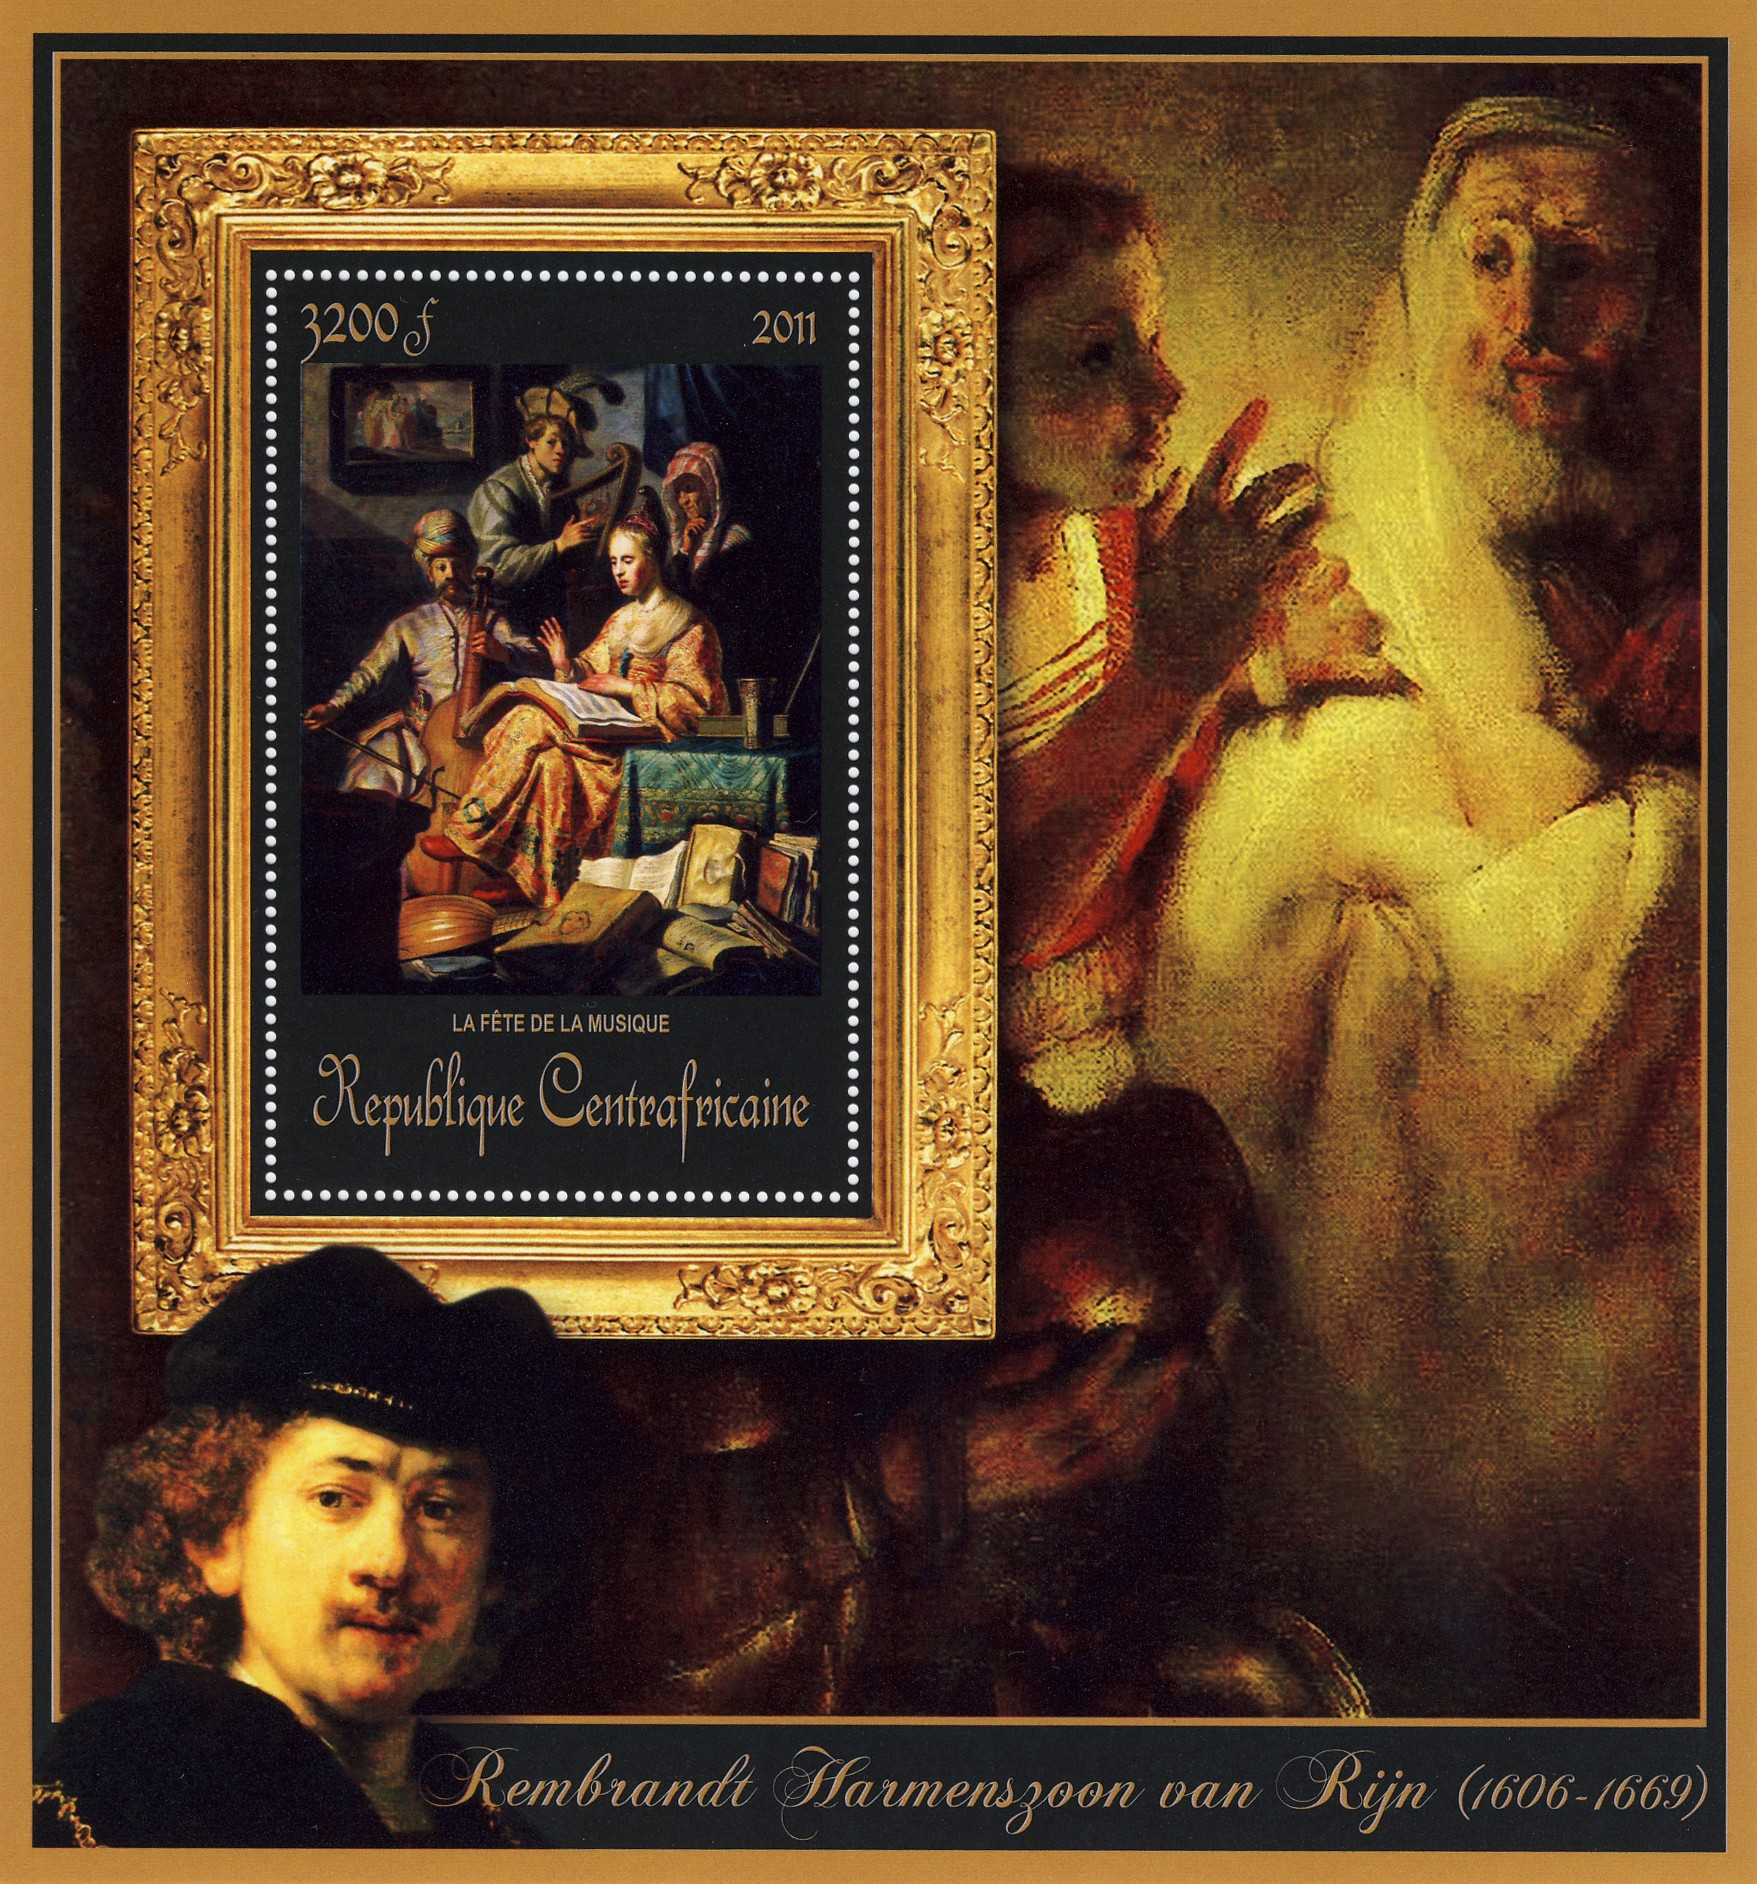 Special Block of Paintings of Rembrandt van Rijn, (La fette de la musique). - Issue of Central African republic postage stamps